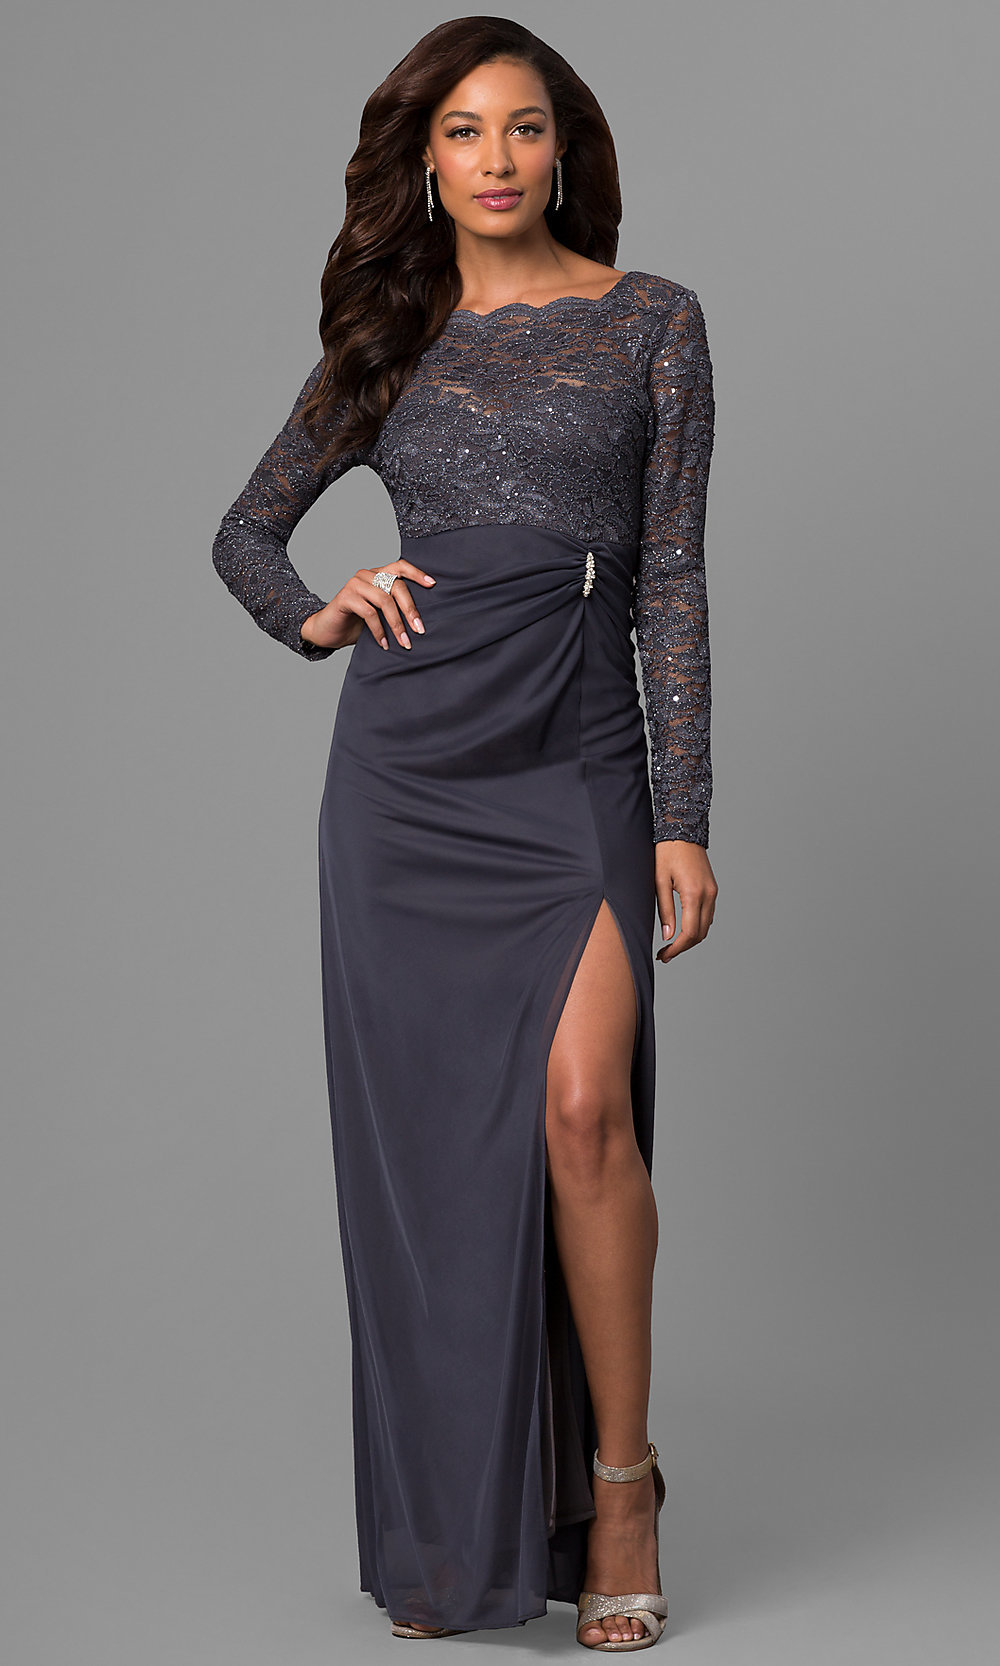 Gunmetal wedding guest dress with lace promgirl for Long sleeve dresses to wear to a wedding